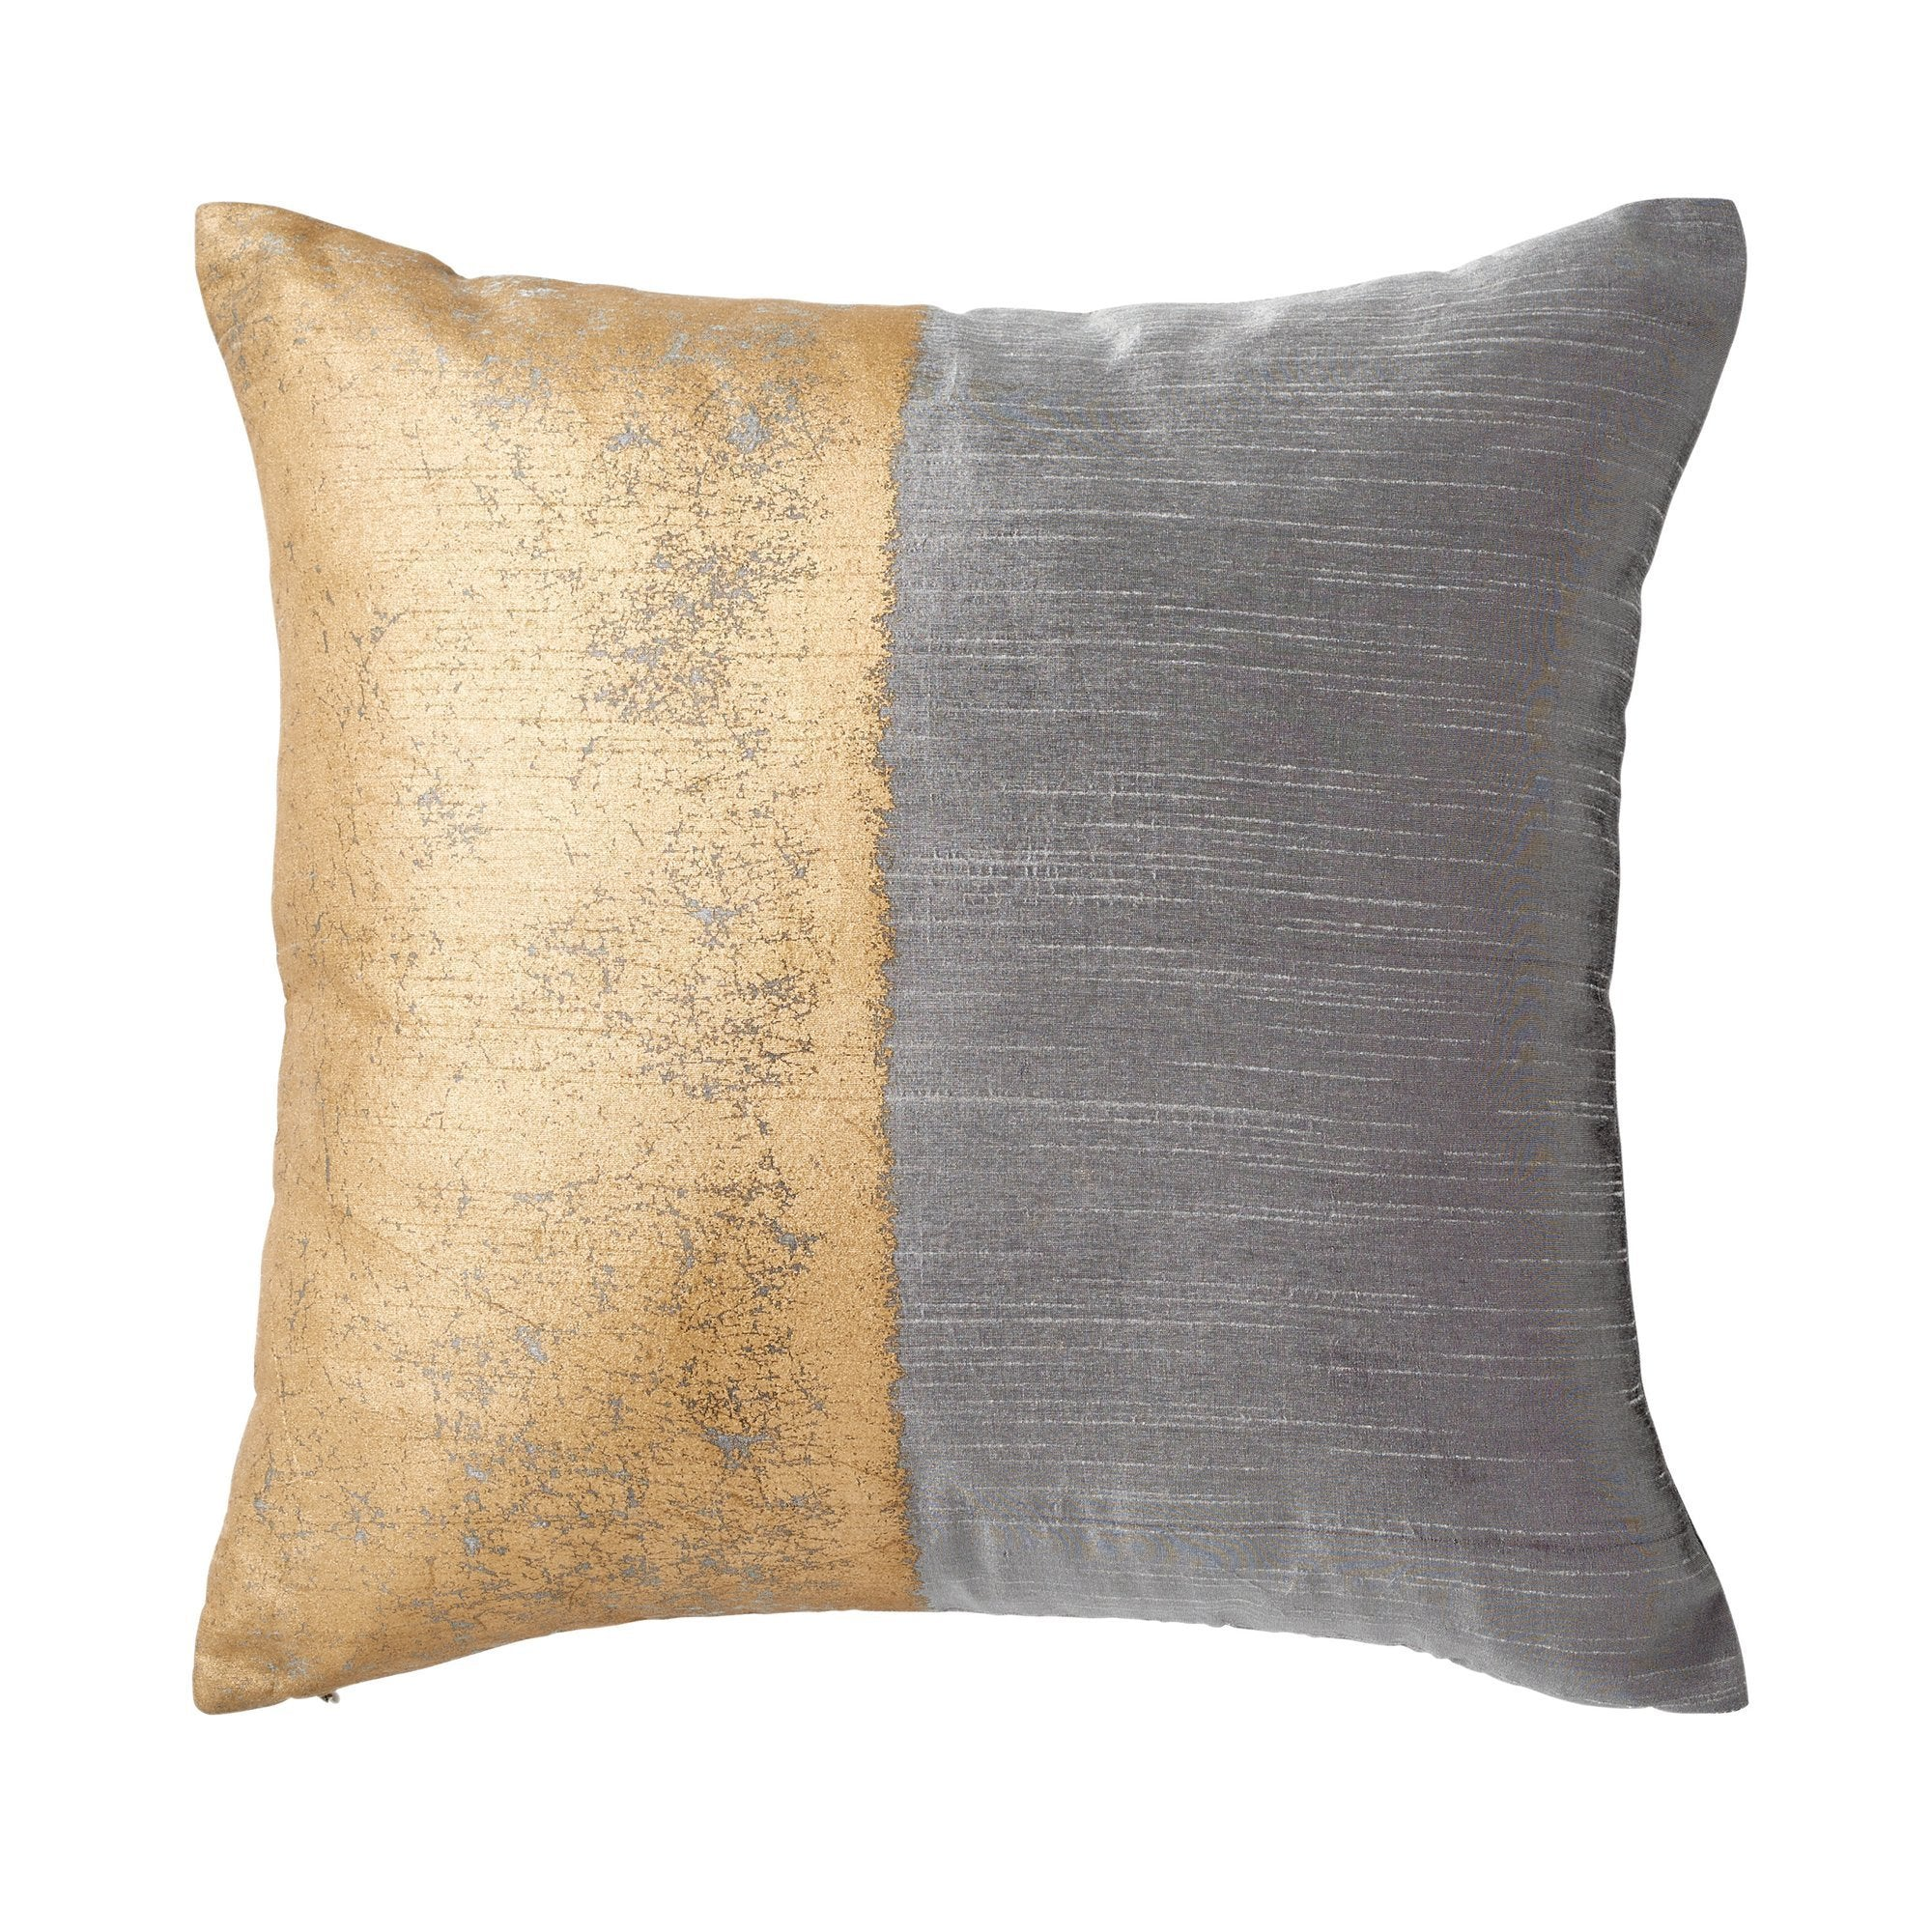 Metallic Texture Decorative Pillow - Grey